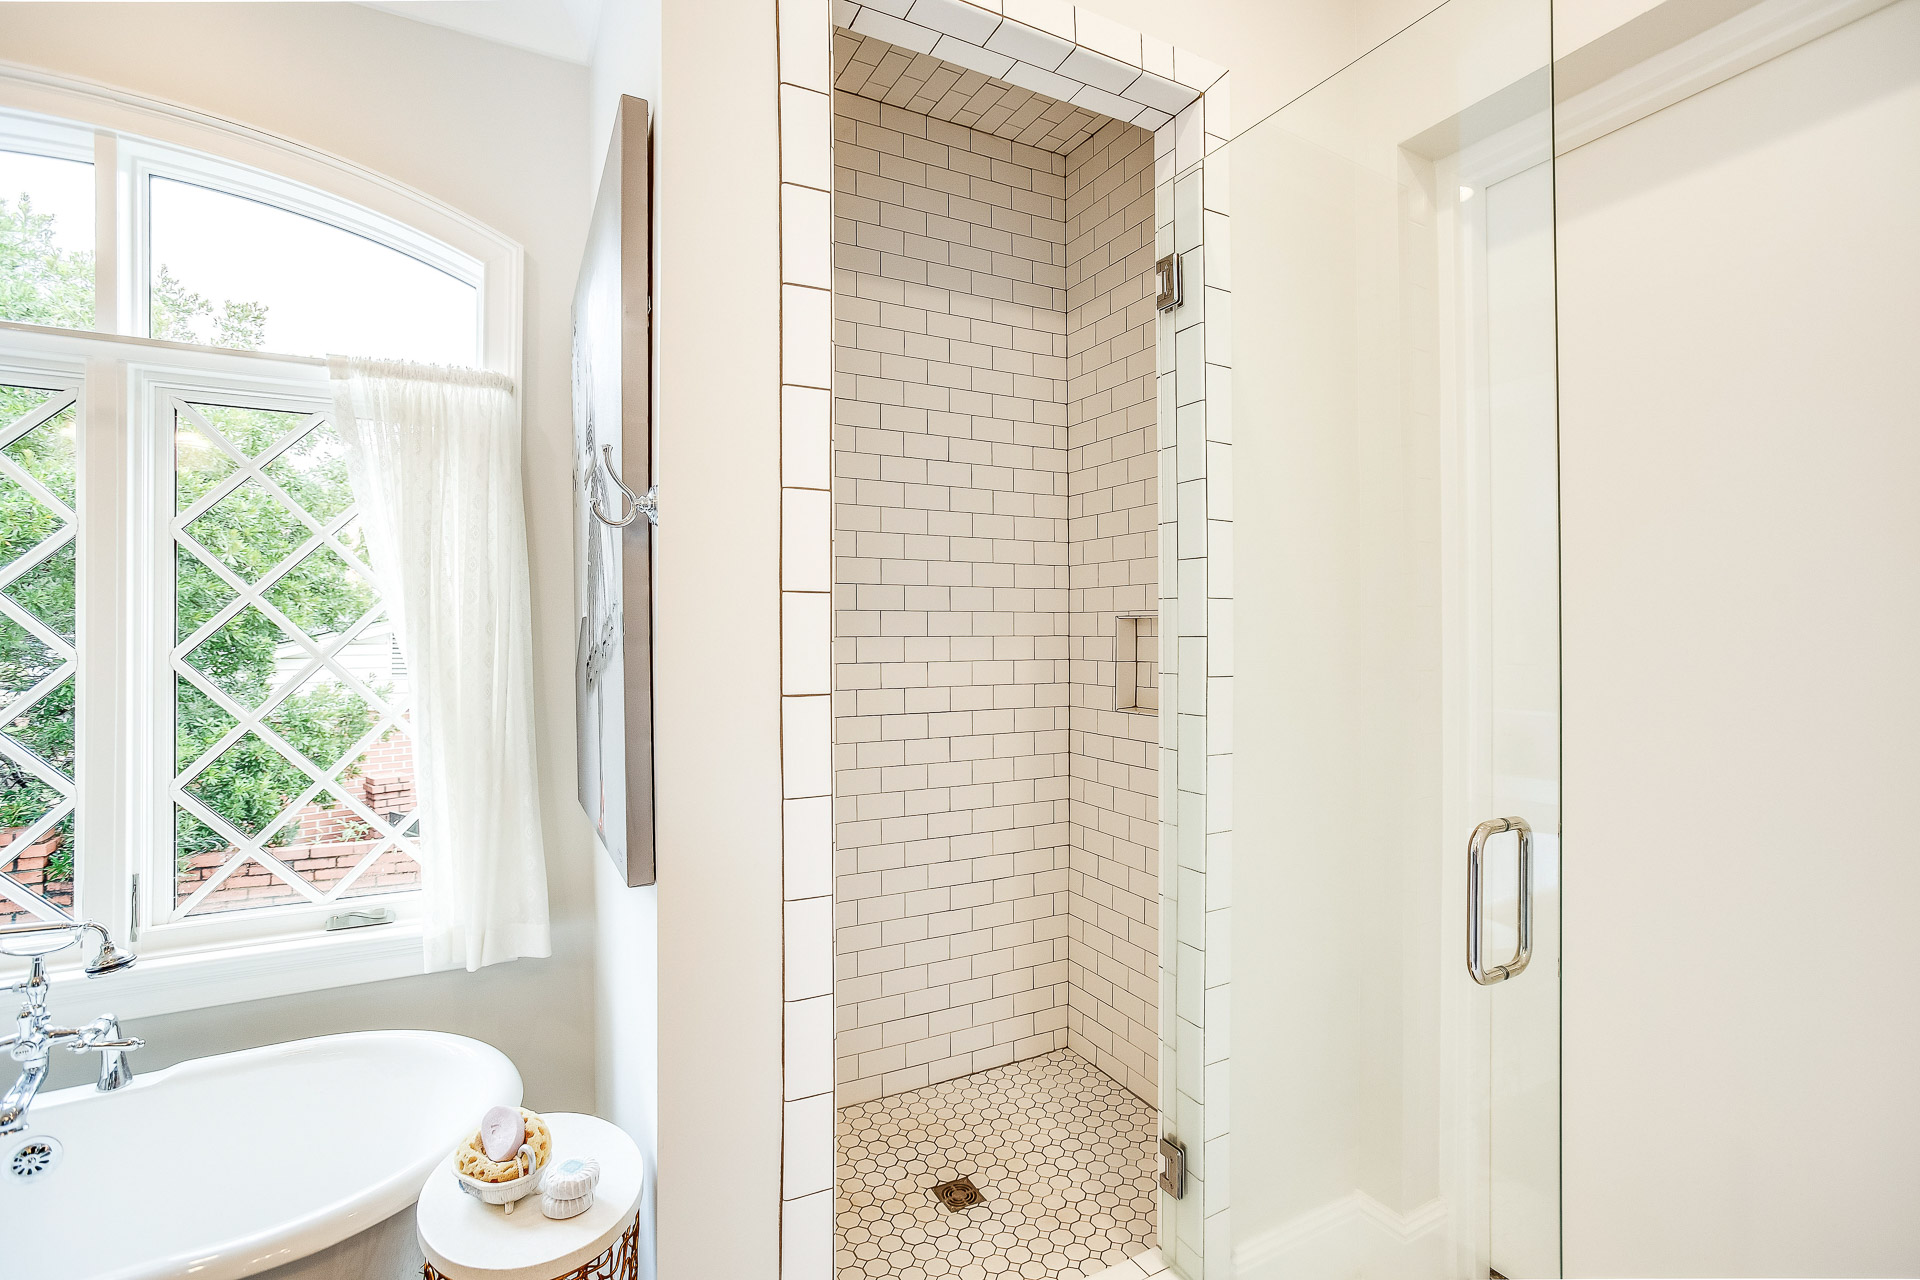 A separate walk-in shower with glass door and chrome hardware.